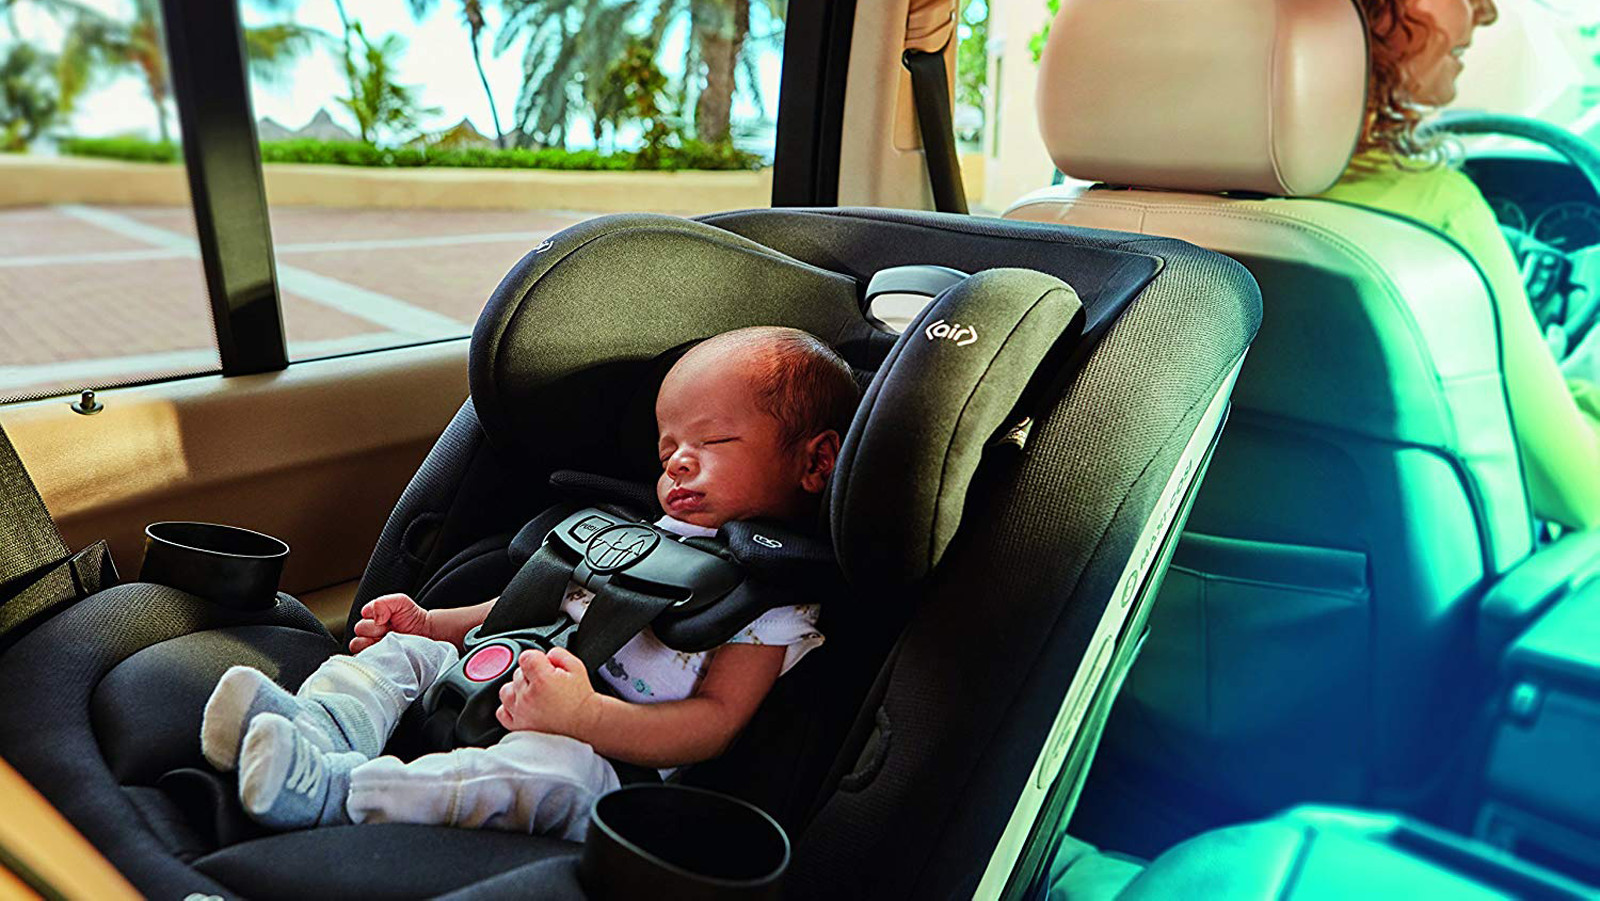 Best Convertible Car Seats Work For Newborns Toddlers And Young Children Cnn Underscored